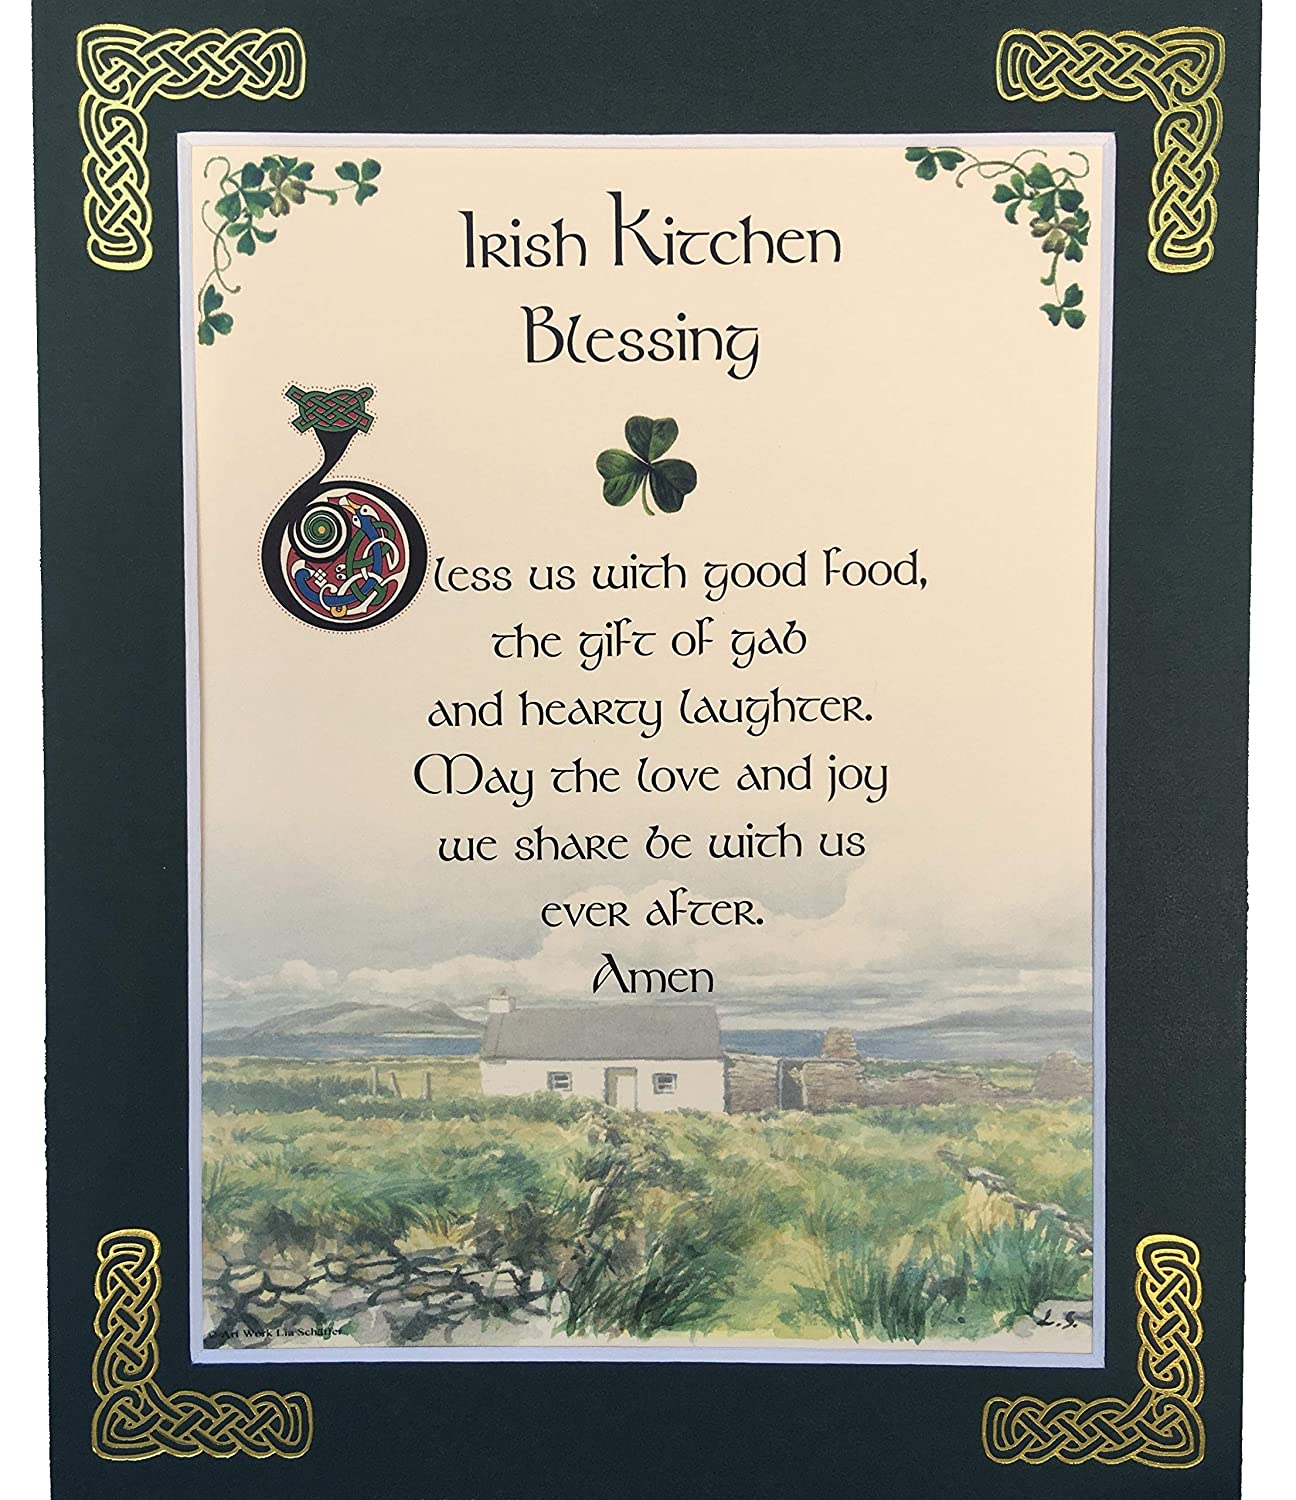 Irish Kitchen Blessing - 8x10 Home Blessing with Green Matting